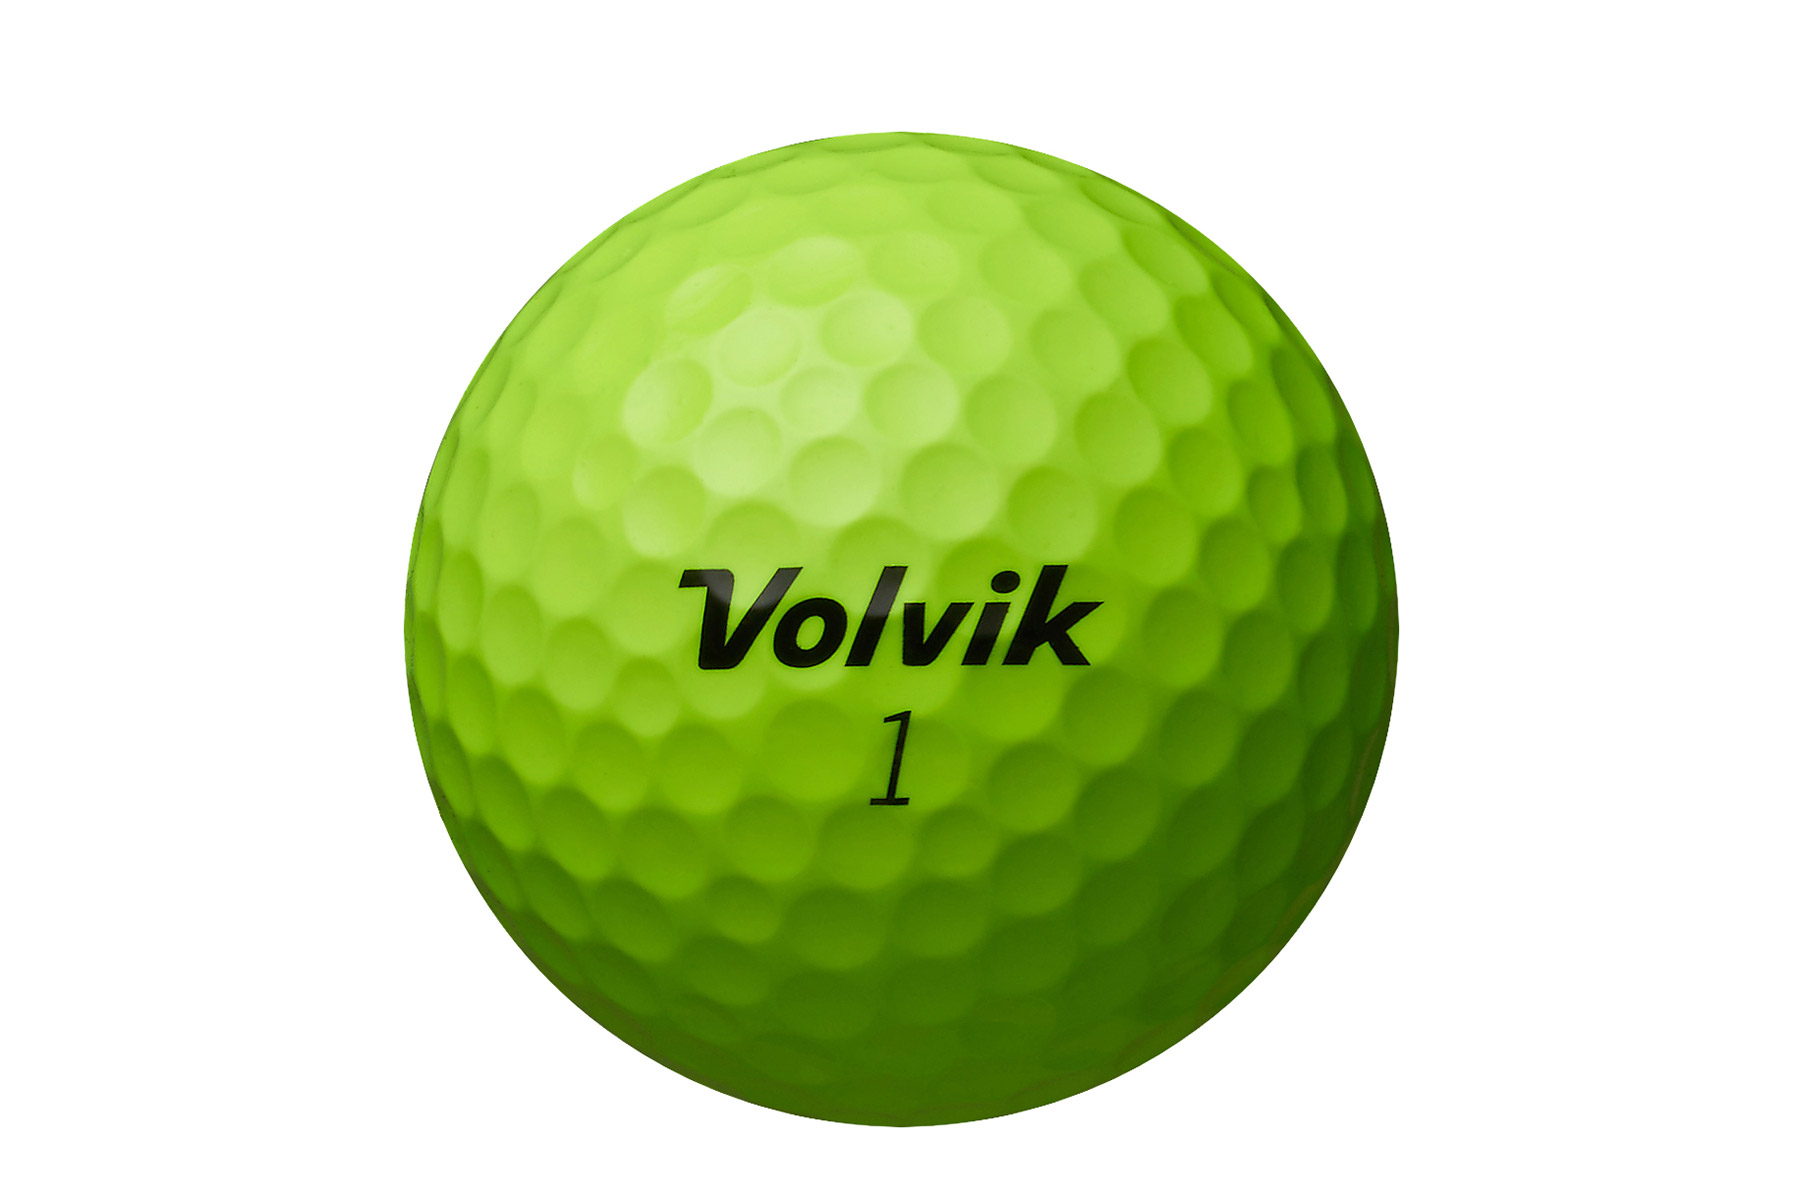 Volvik S4 12 Ball pack from american golf